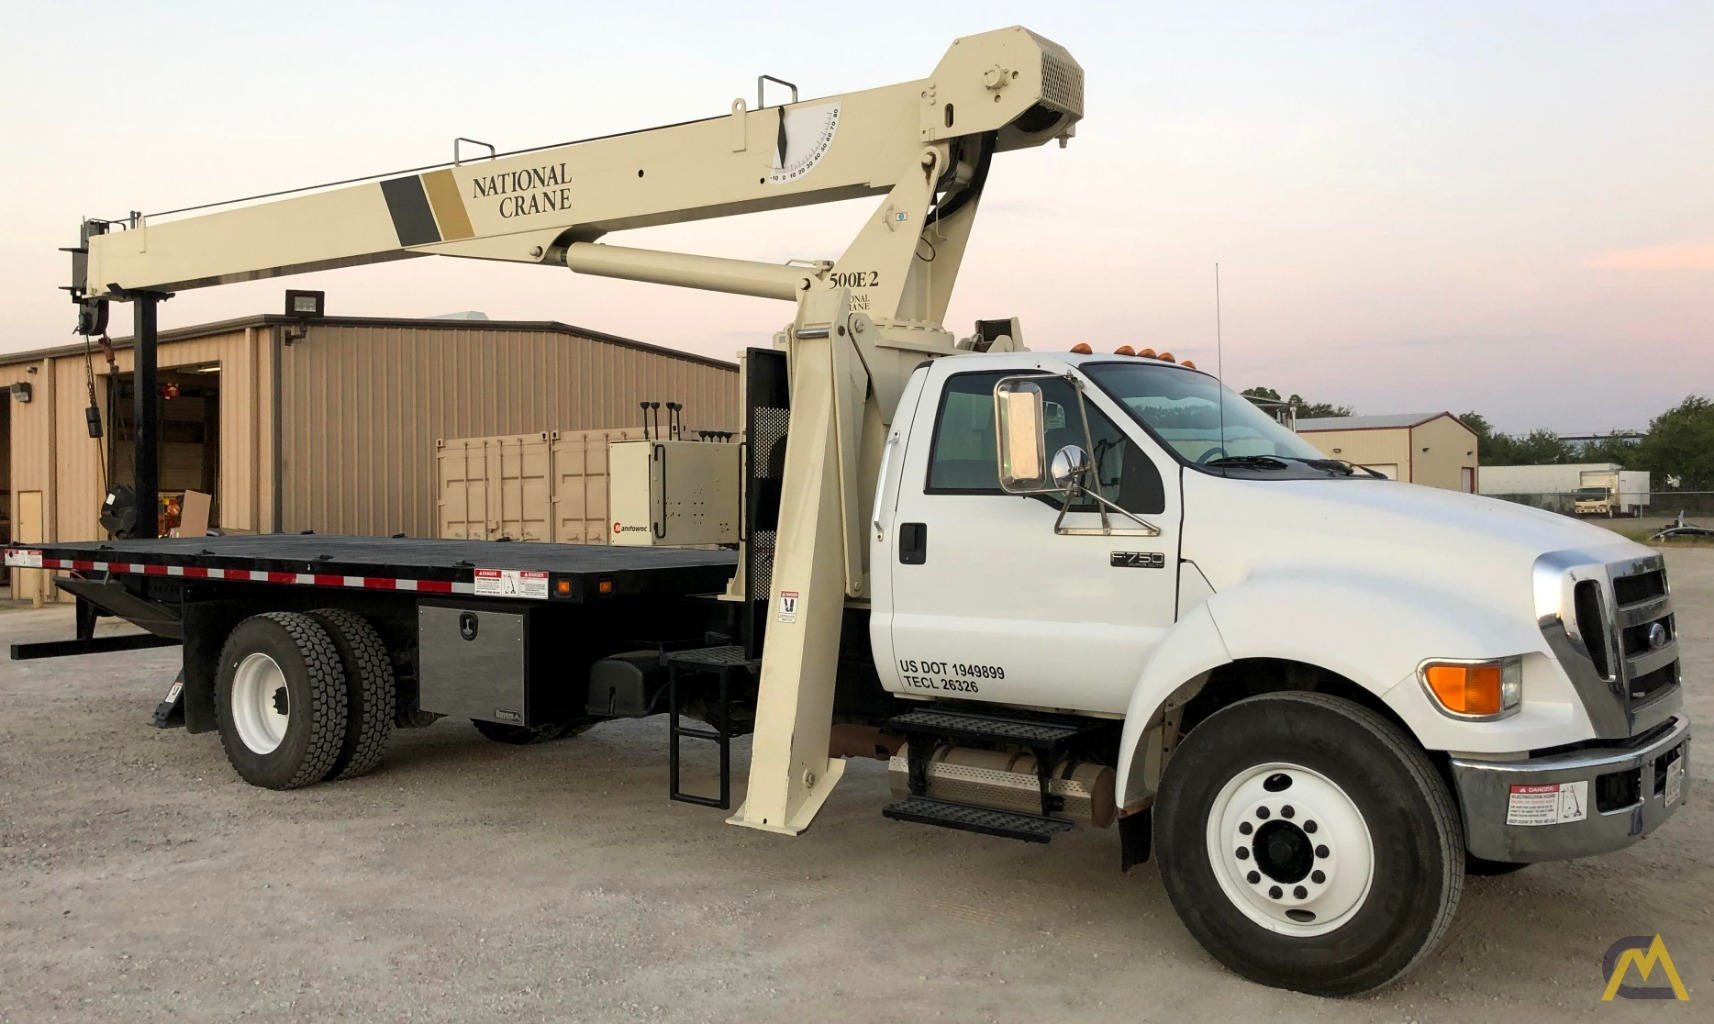 National 500E2 Series 571E2 18-Ton Boom Truck Crane on Ford F750 XL 0